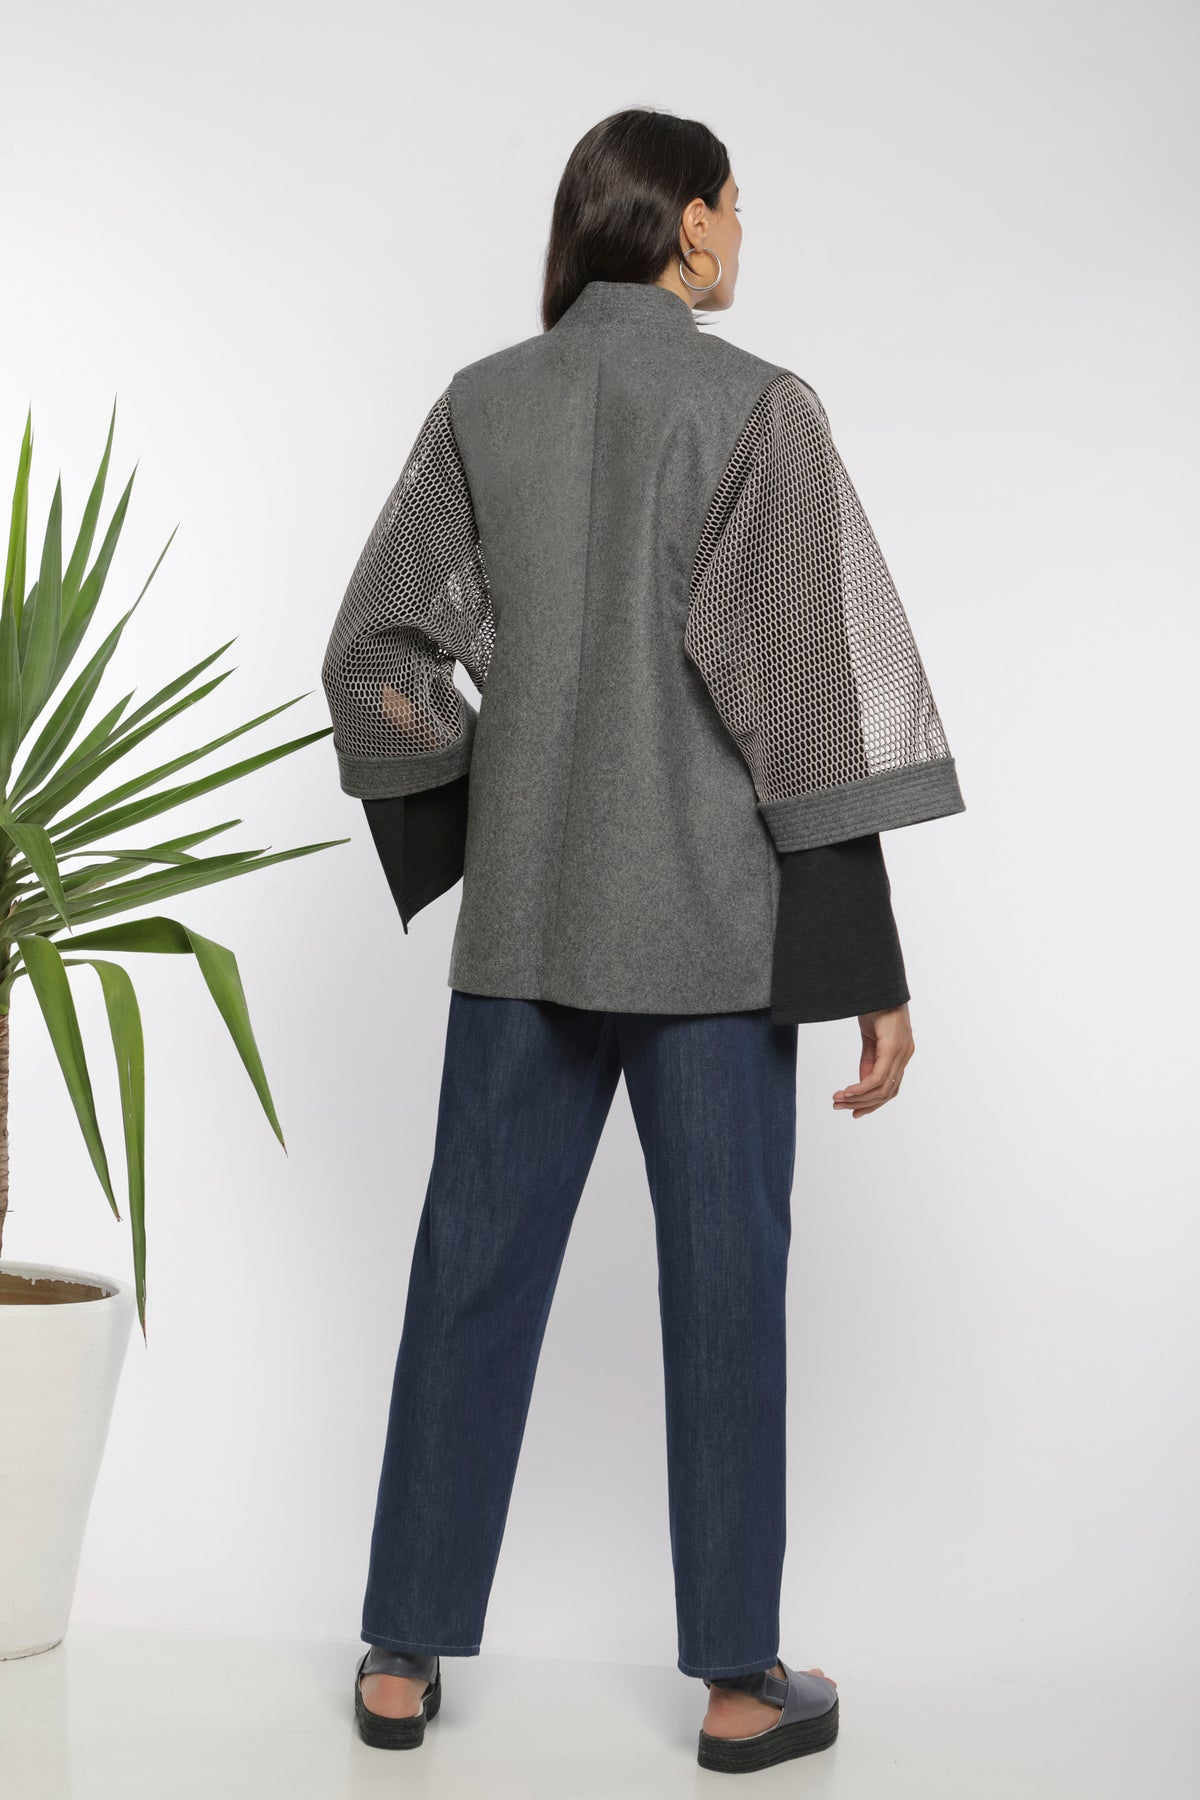 Keikogi jacket wool and neoprene